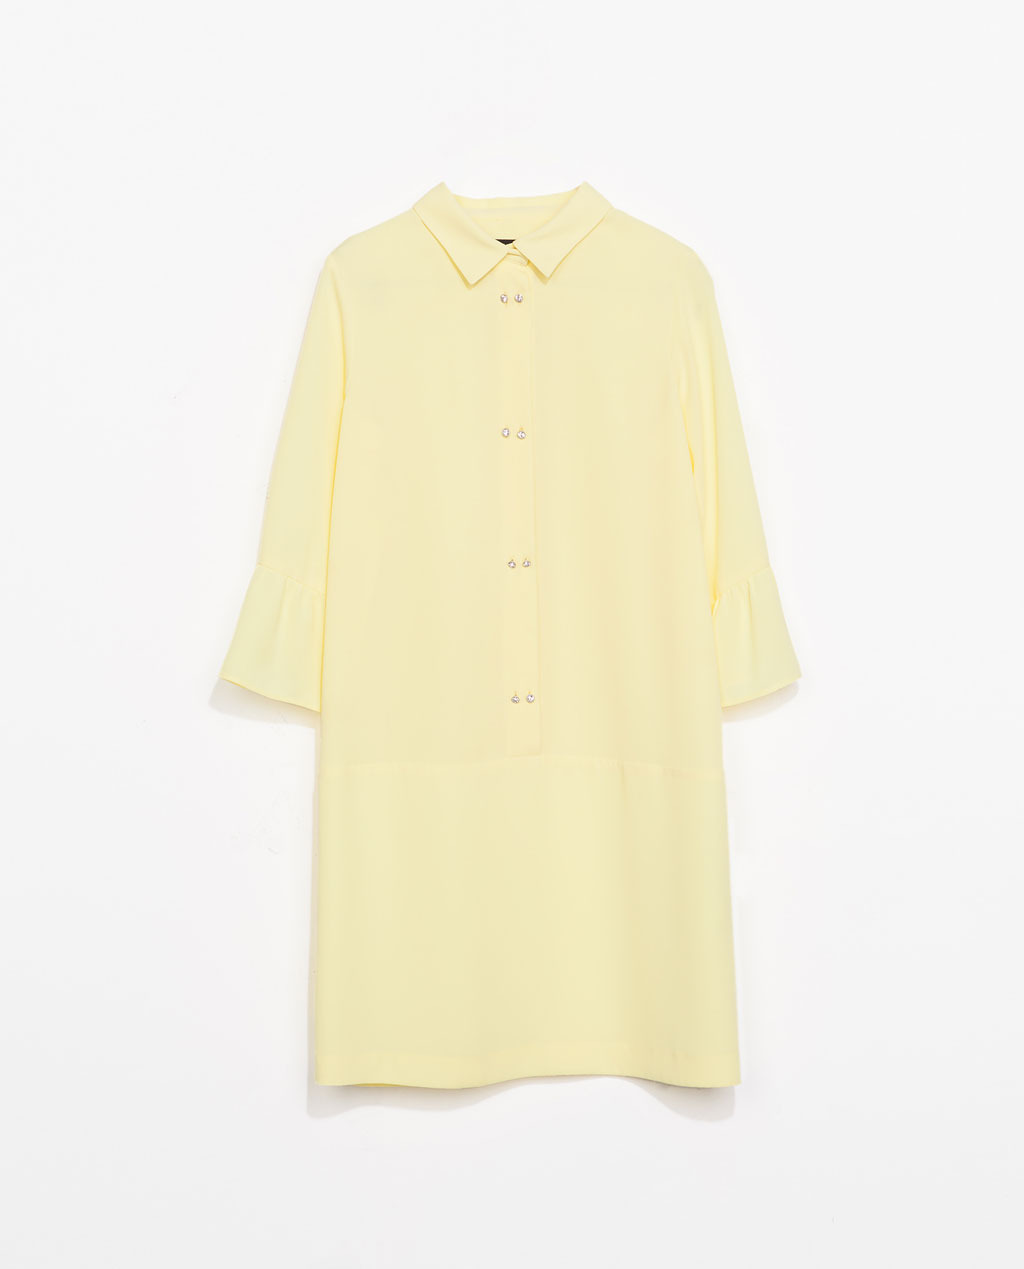 Dress With Jewel Buttons - style: shirt; length: mid thigh; neckline: shirt collar/peter pan/zip with opening; pattern: plain; waist detail: drop waist; predominant colour: primrose yellow; occasions: casual, evening, holiday, creative work; fit: soft a-line; fibres: polyester/polyamide - 100%; sleeve length: 3/4 length; sleeve style: standard; texture group: sheer fabrics/chiffon/organza etc.; pattern type: fabric; embellishment: crystals/glass; season: s/s 2014; wardrobe: highlight; embellishment location: bust